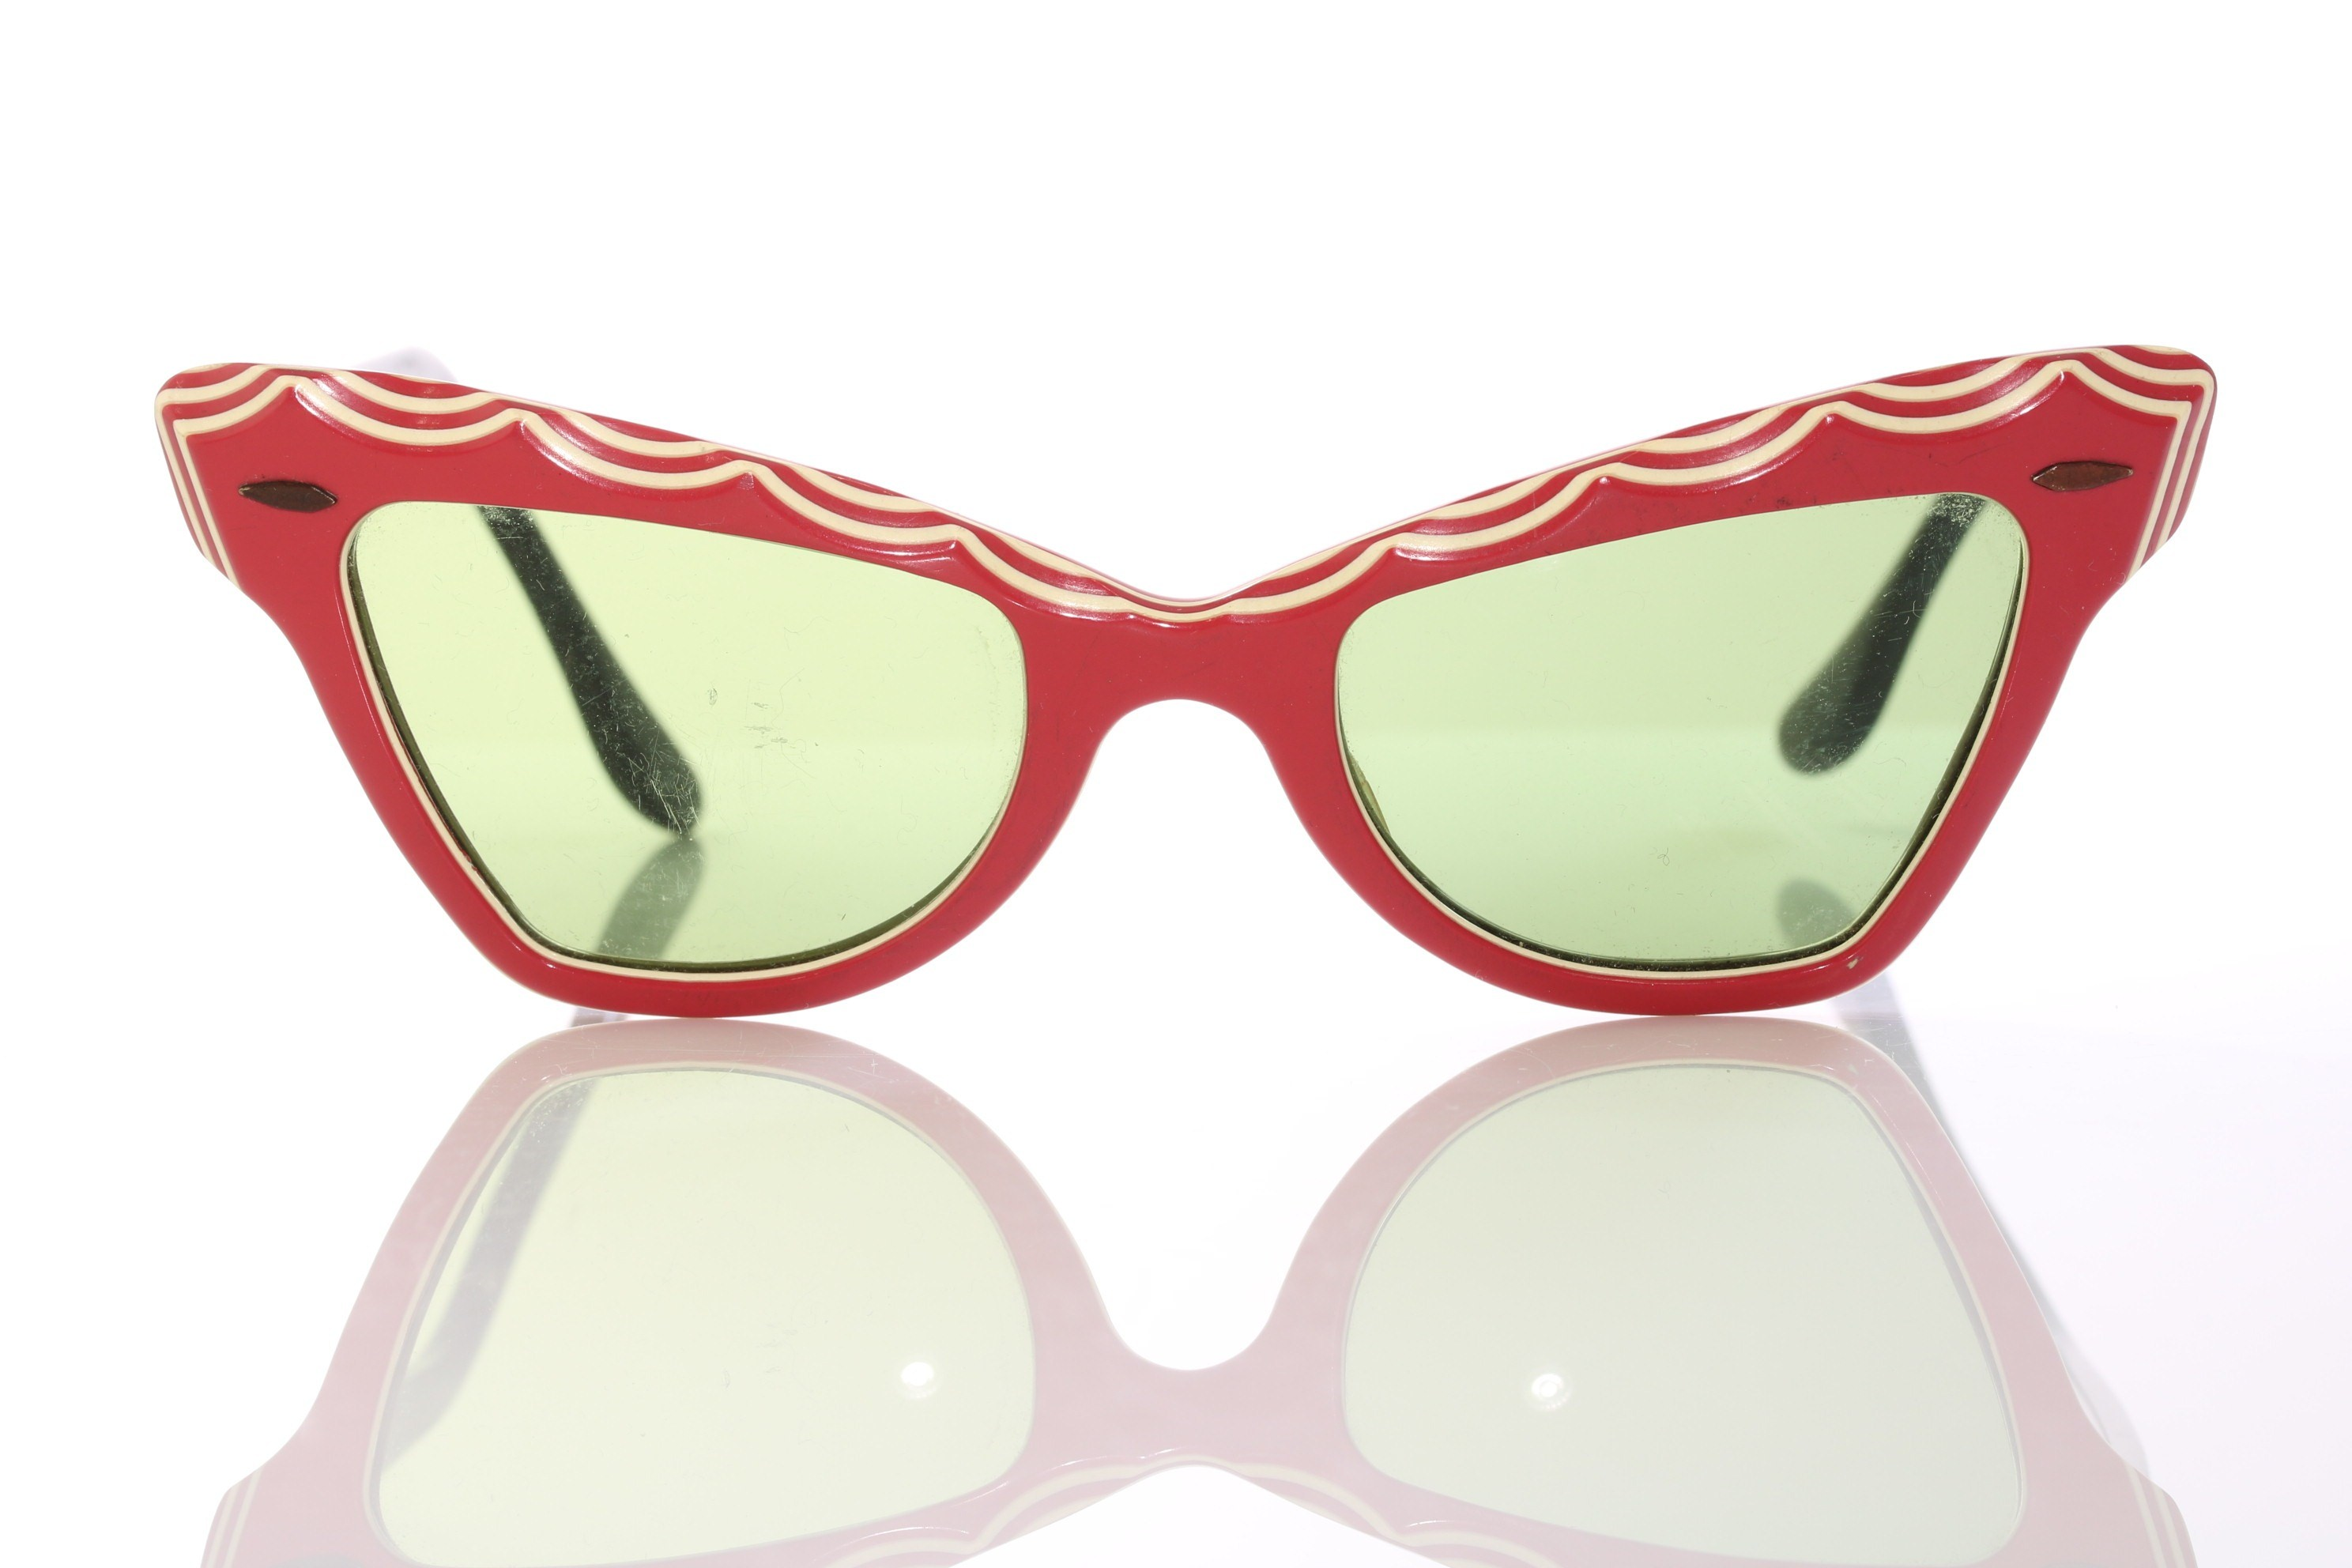 988d37797a Cat vintage sunglasses from the 50s, very feminine cat eyes design